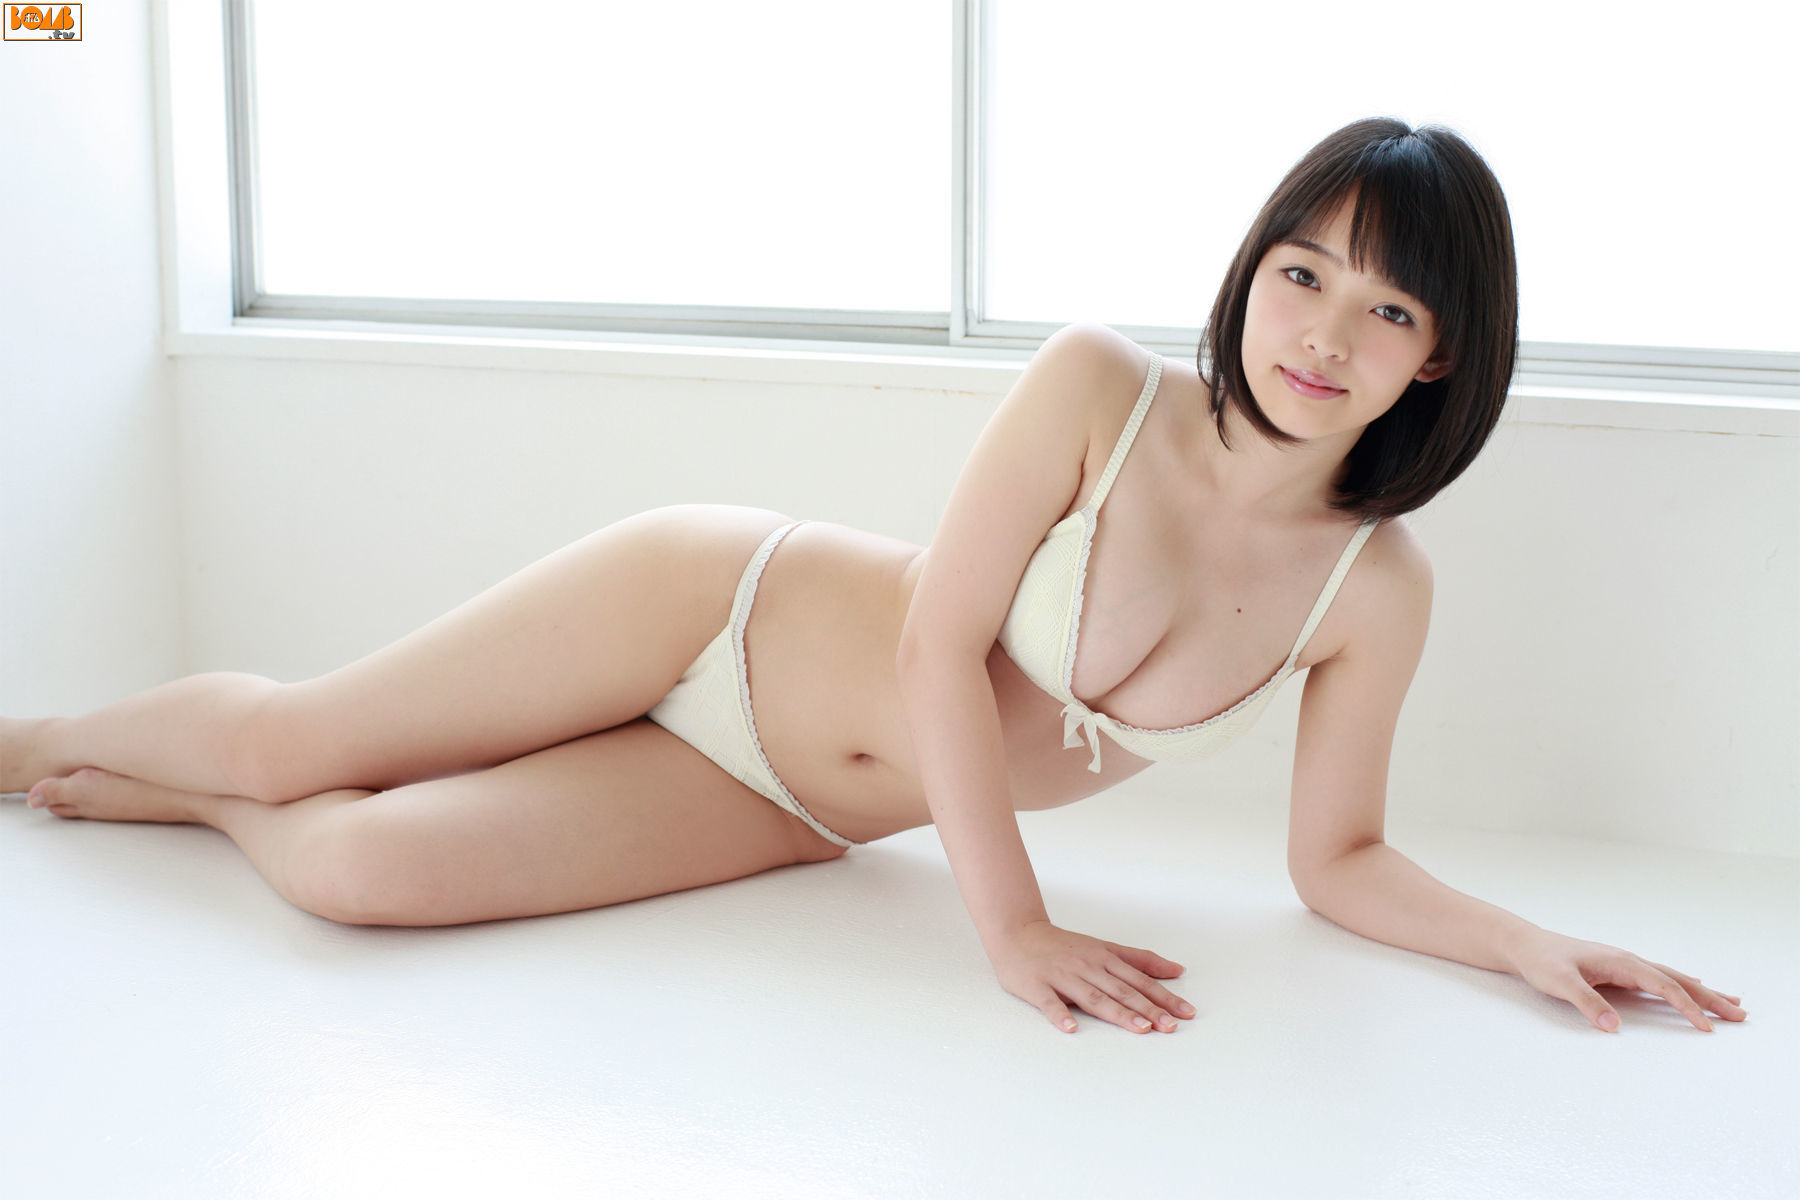 The ultimate swimsuit gravure for the next generation039